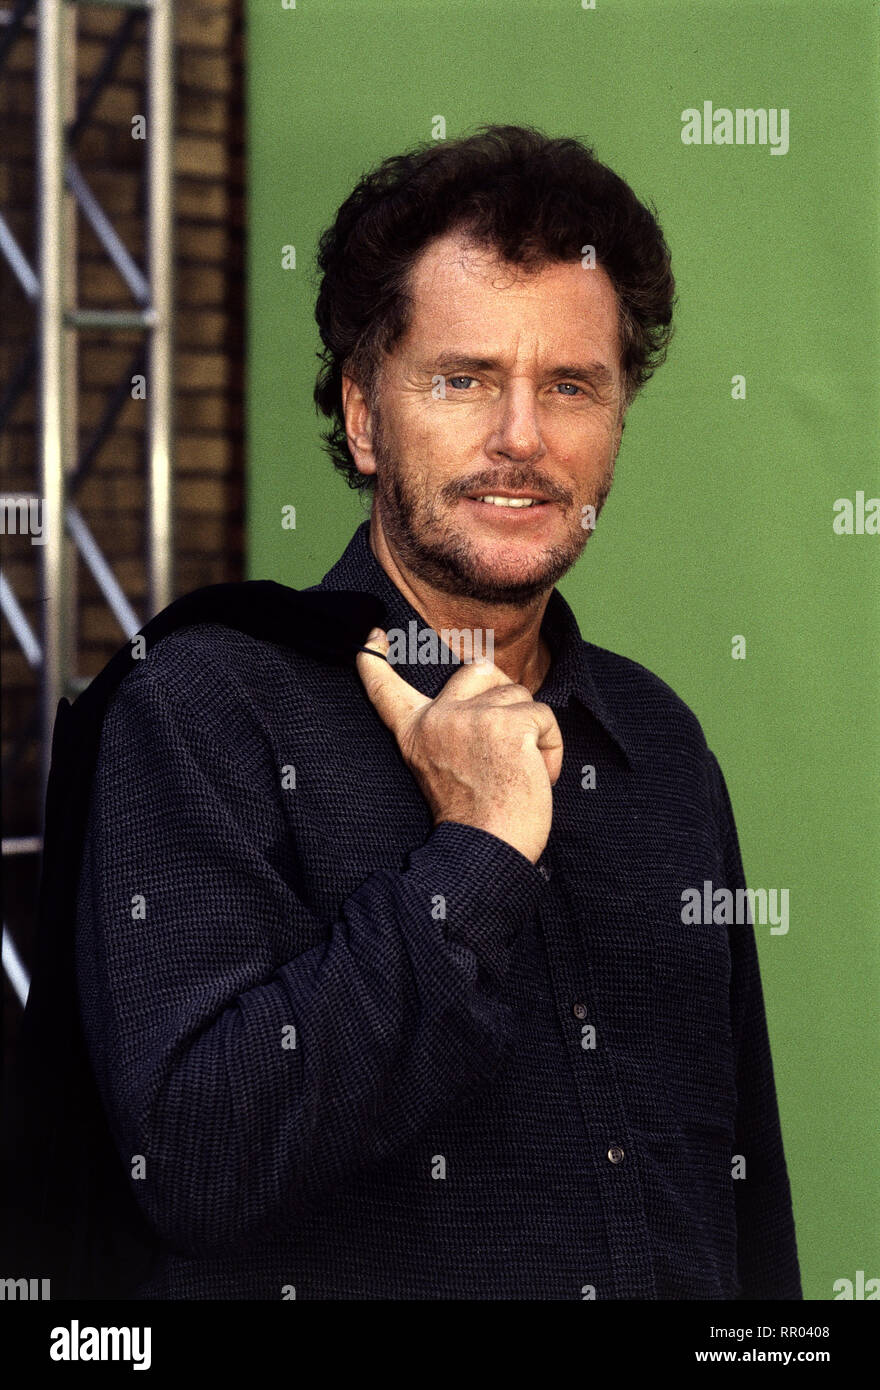 Dieter Wedel High Resolution Stock Photography And Images Alamy